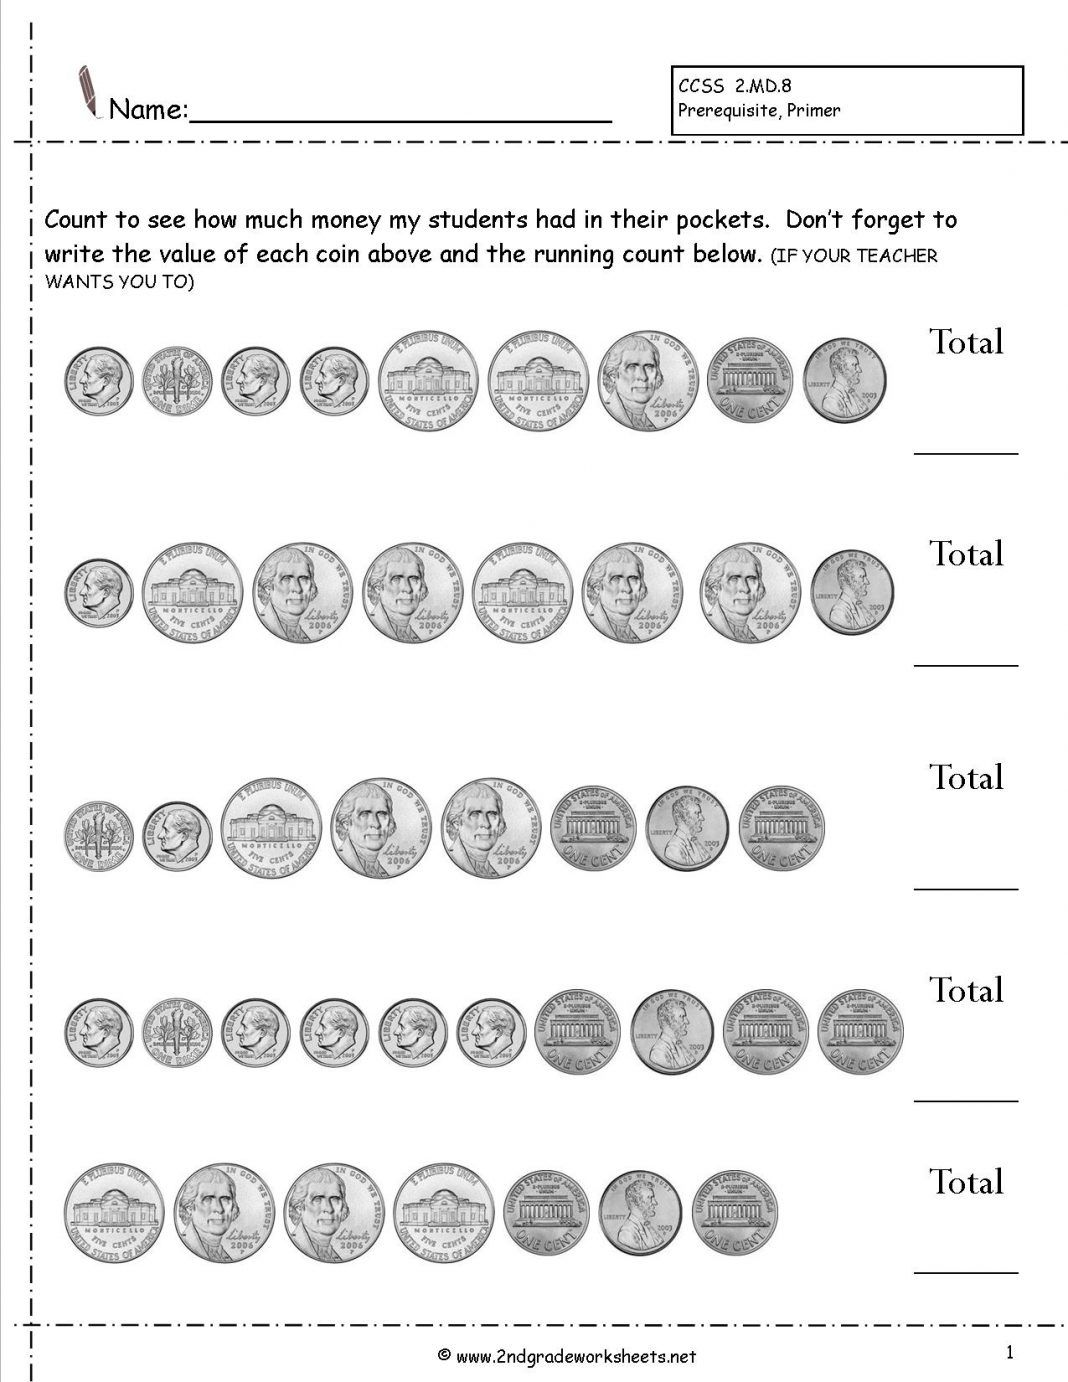 40 Awesome 2nd Grade Math Worksheets Design Ideas Bacamajalah In 2020 Money Math Worksheets Money Worksheets Counting Money Worksheets [ 1382 x 1068 Pixel ]